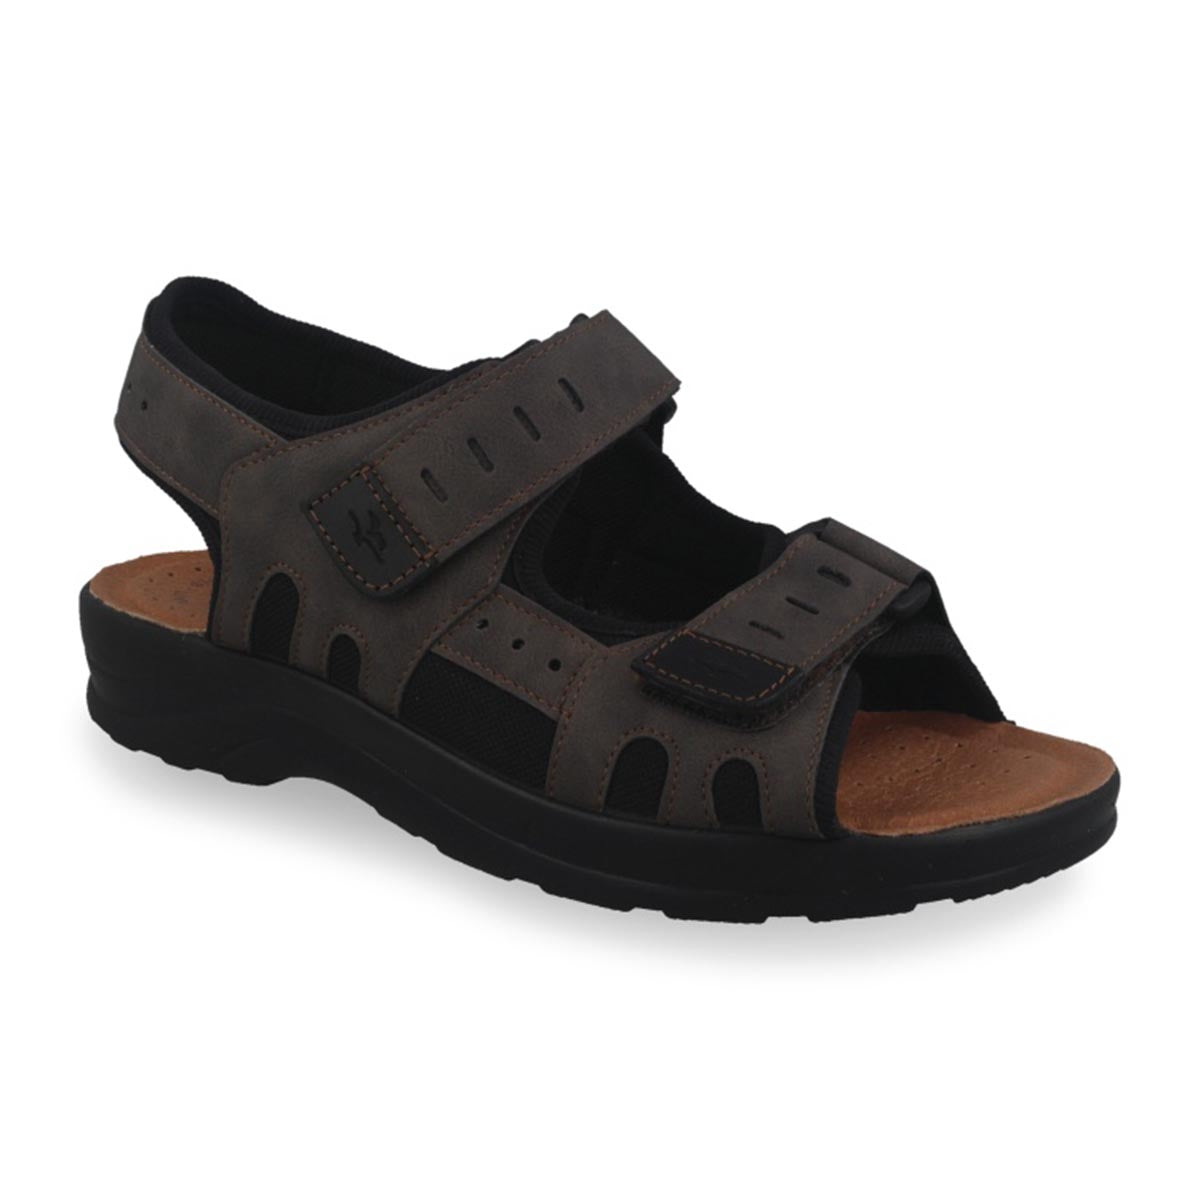 Synthetic Man Sandal Dark Brown (S5037cb)